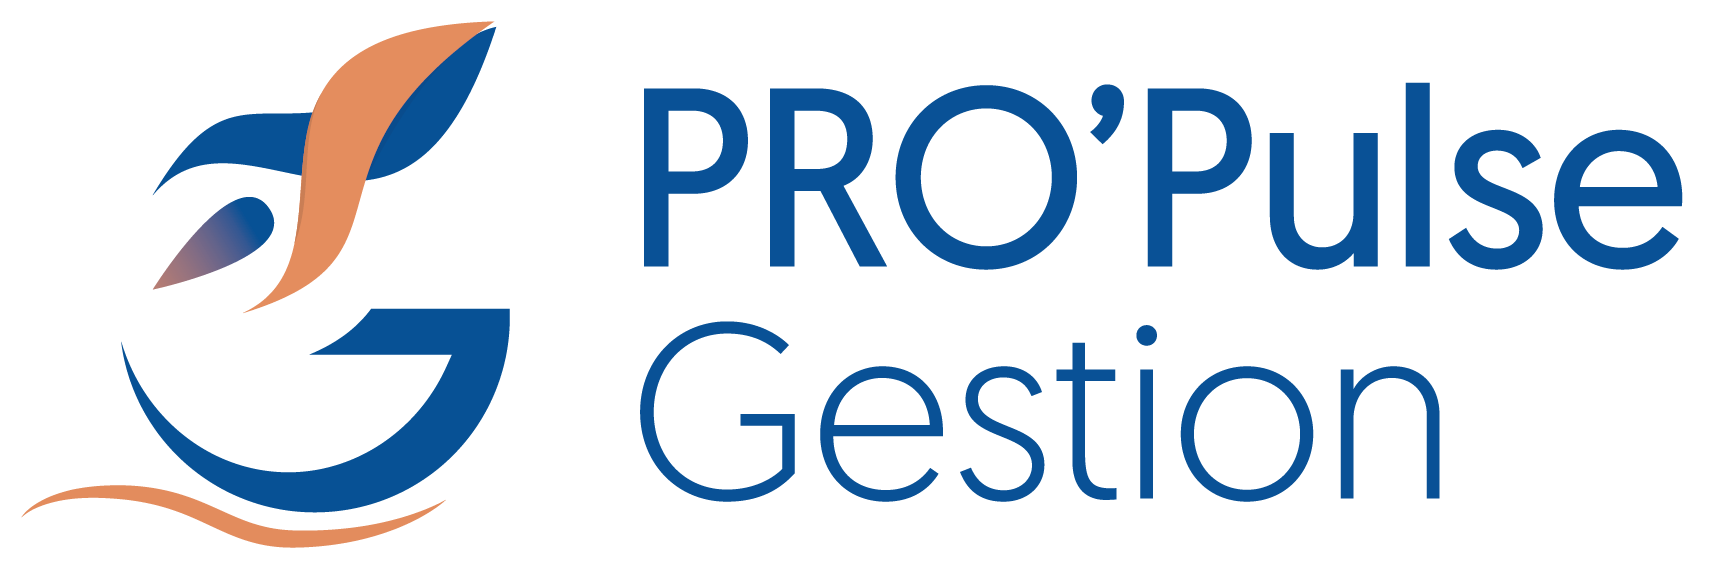 PRO'Pulse Gestion - Formations & Ressources